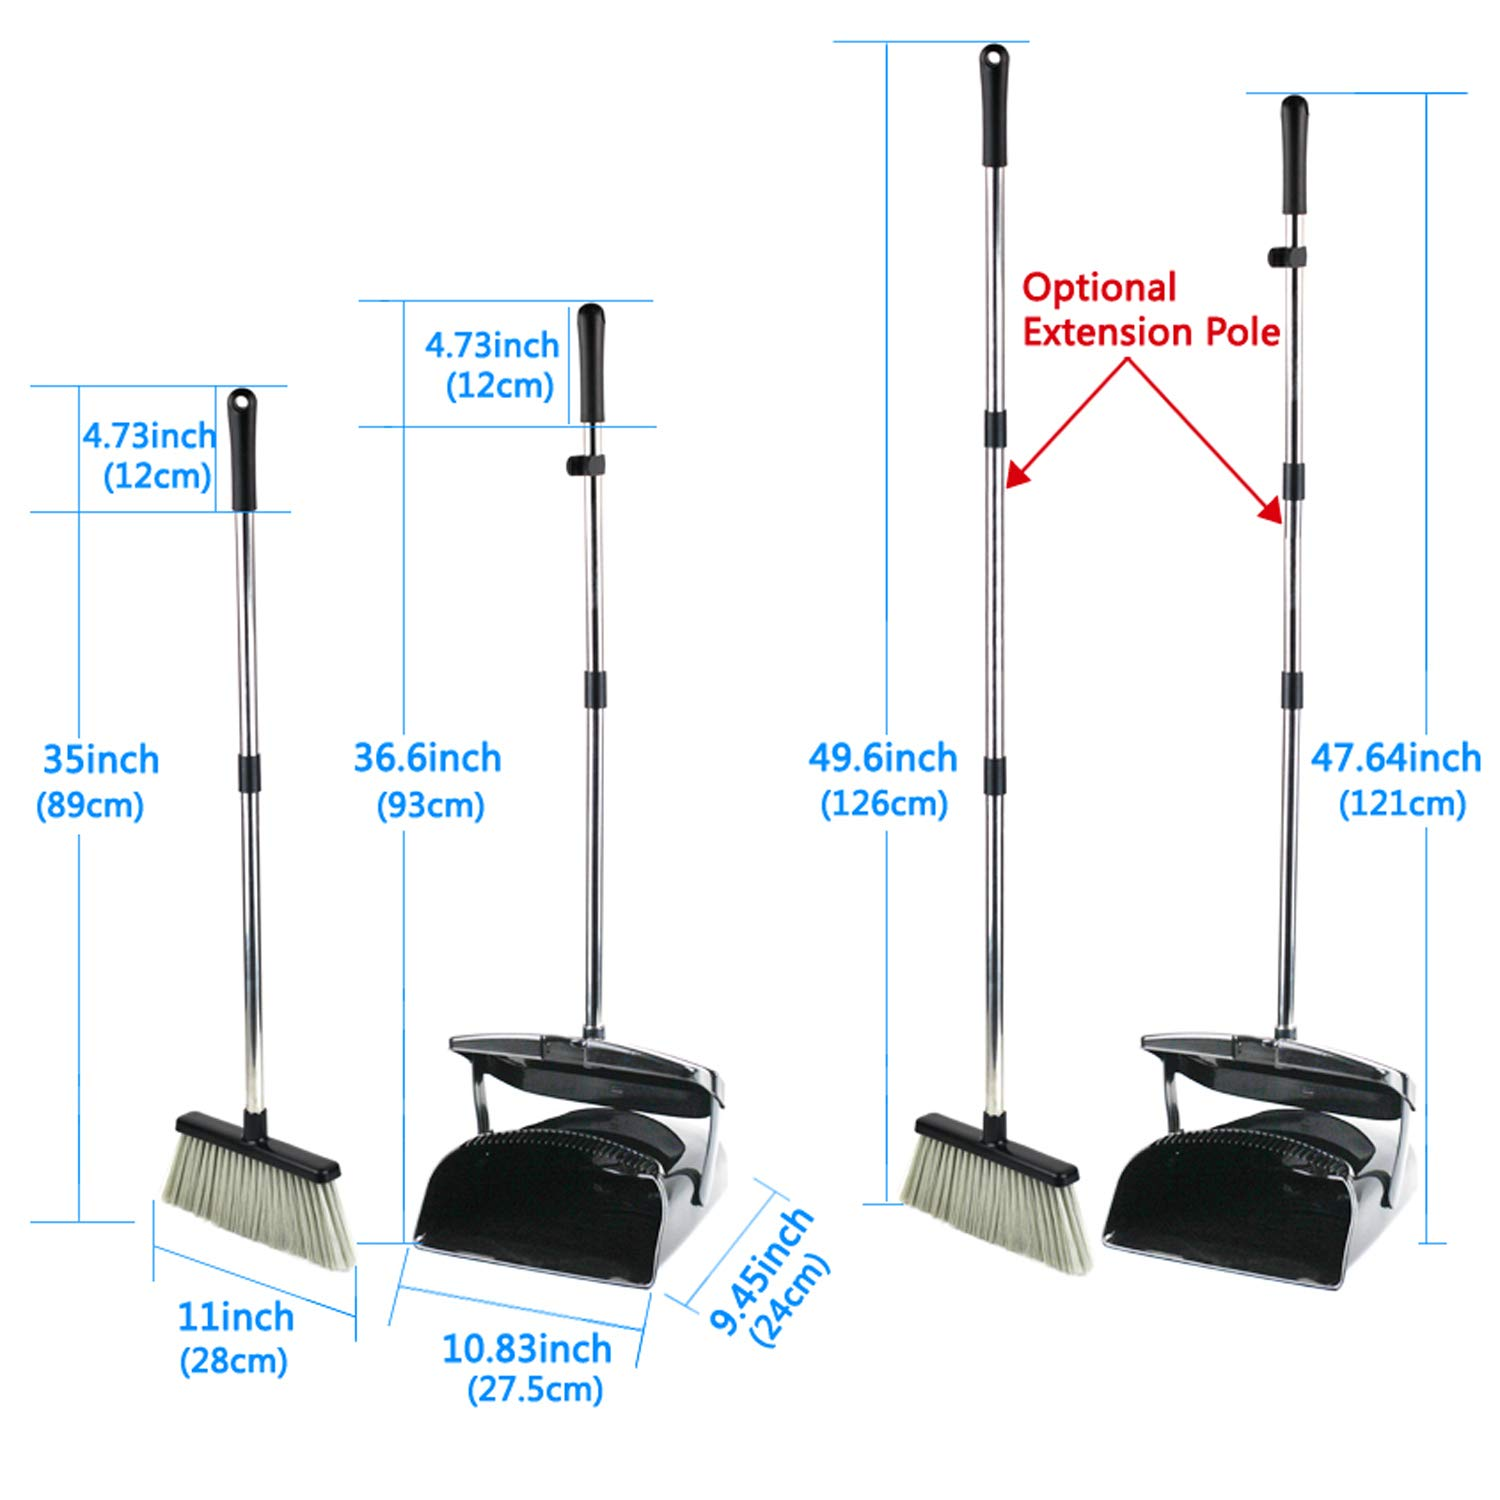 Broom and Dustpan Set, Commercial Long Handle Sweep Set and Lobby Broom,Upright Grips Sweep Set with Broom for Home, Kitchen, Room, Office and Lobby Floor Dust Pan & Broom Combo, Black by Laixiu (Image #3)